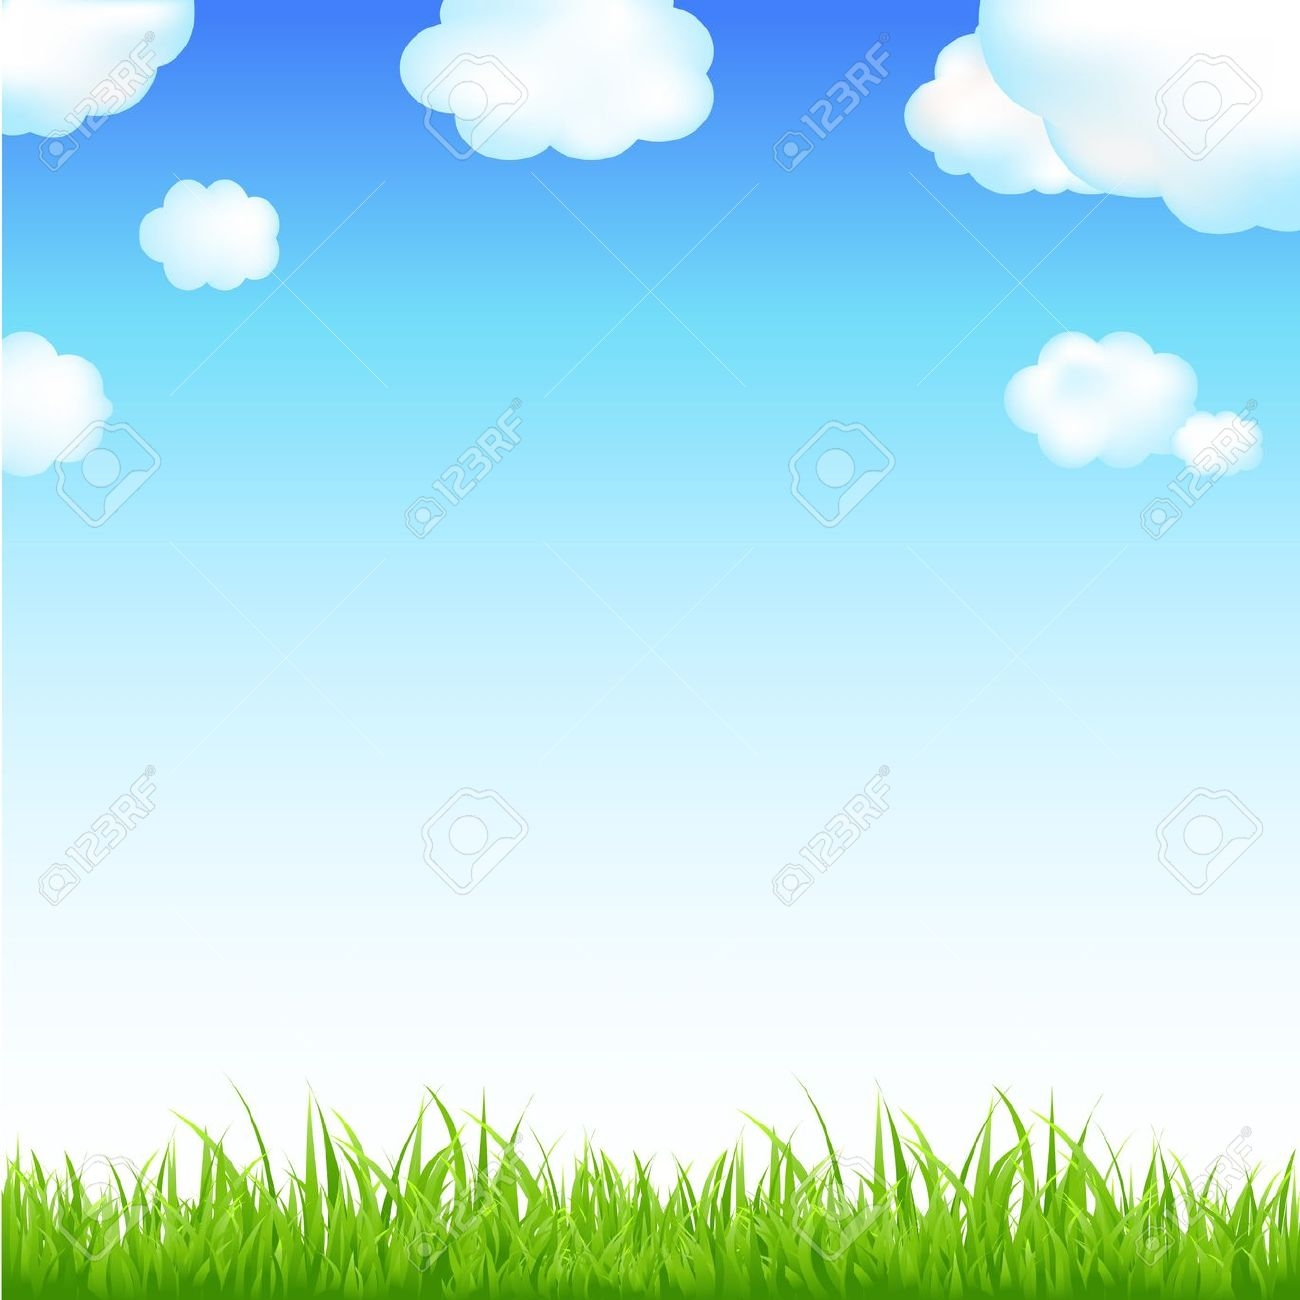 nature background for kids clipart 9 187 clipart station